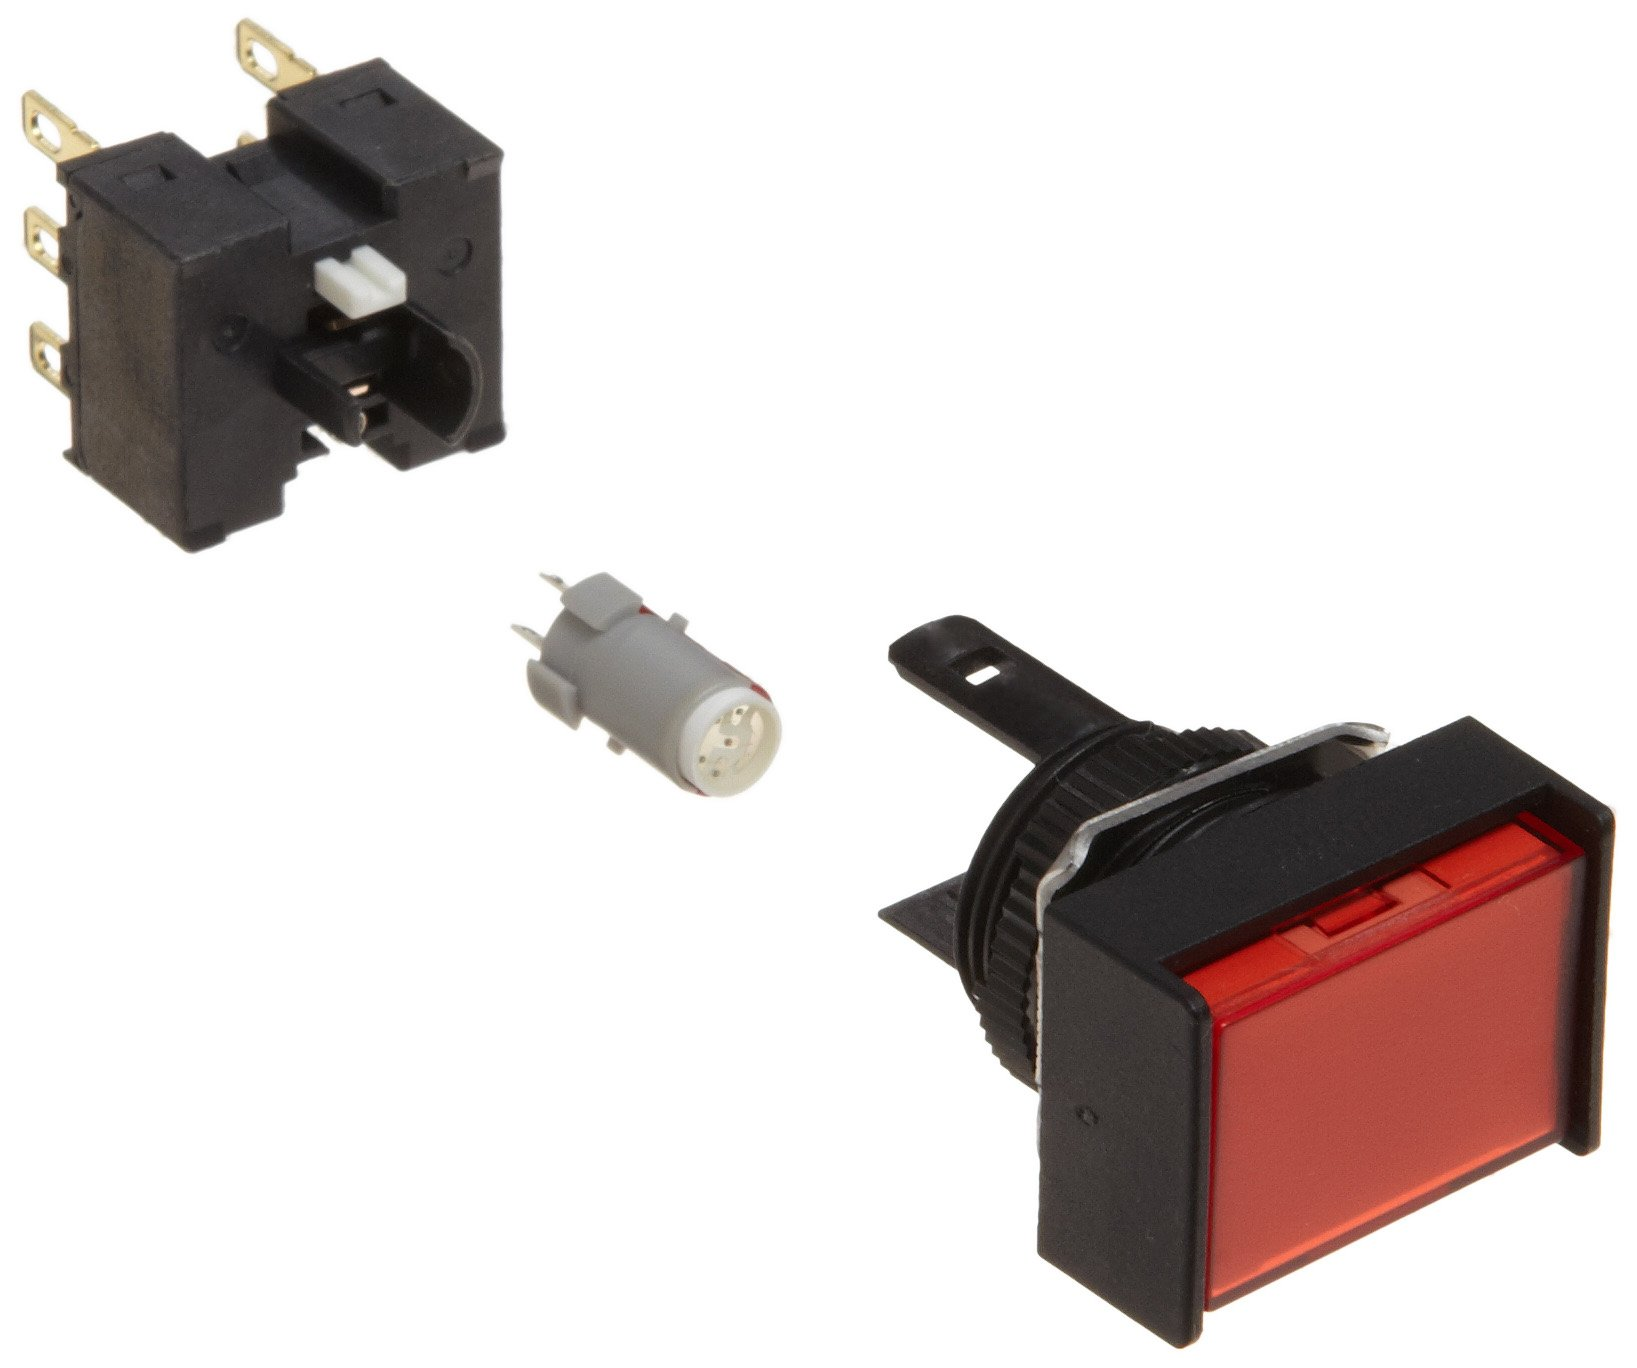 Omron A165L-JRM-24D-2 Two Way Guard Type Pushbutton and Switch, Solder Terminal, IP65 Oil-Resistant, 16mm Mounting Aperture, LED Lighted, Momentary Operation, Rectangular, Red, 24 VDC Rated Voltage, Double Pole Double Throw Contacts